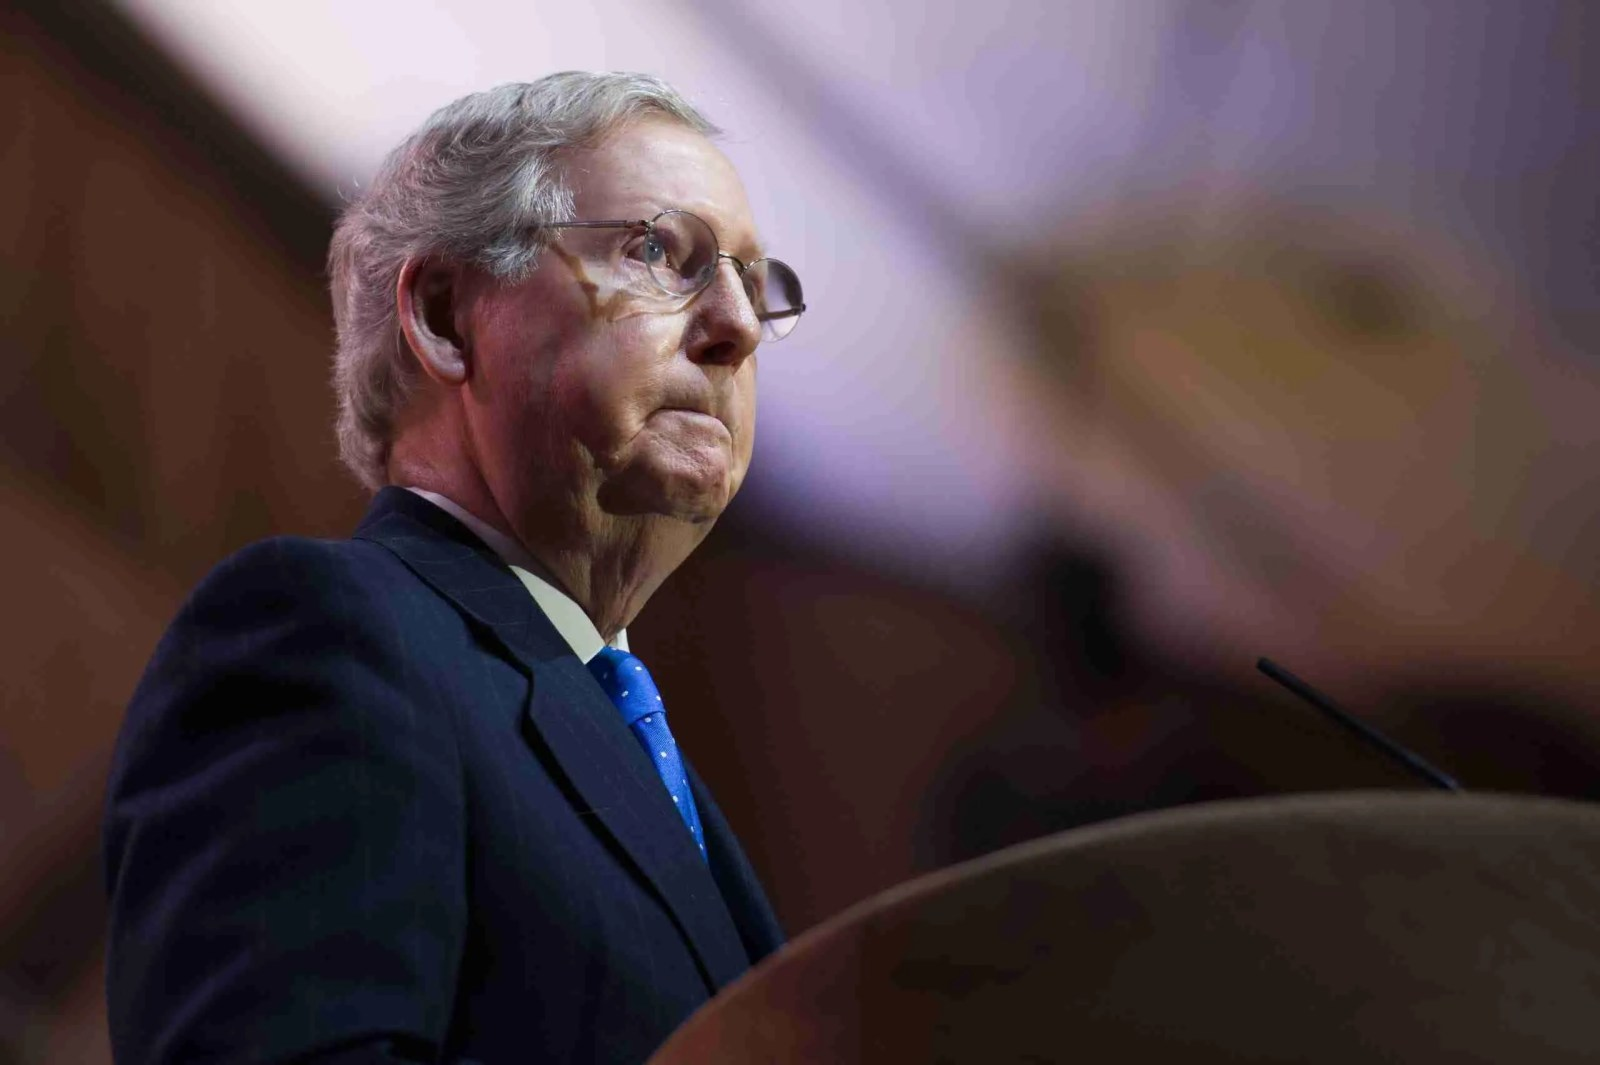 Mitch McConnell Crosses The Line After Giving Patriot Act Warrantless Internet Access to FBI 7